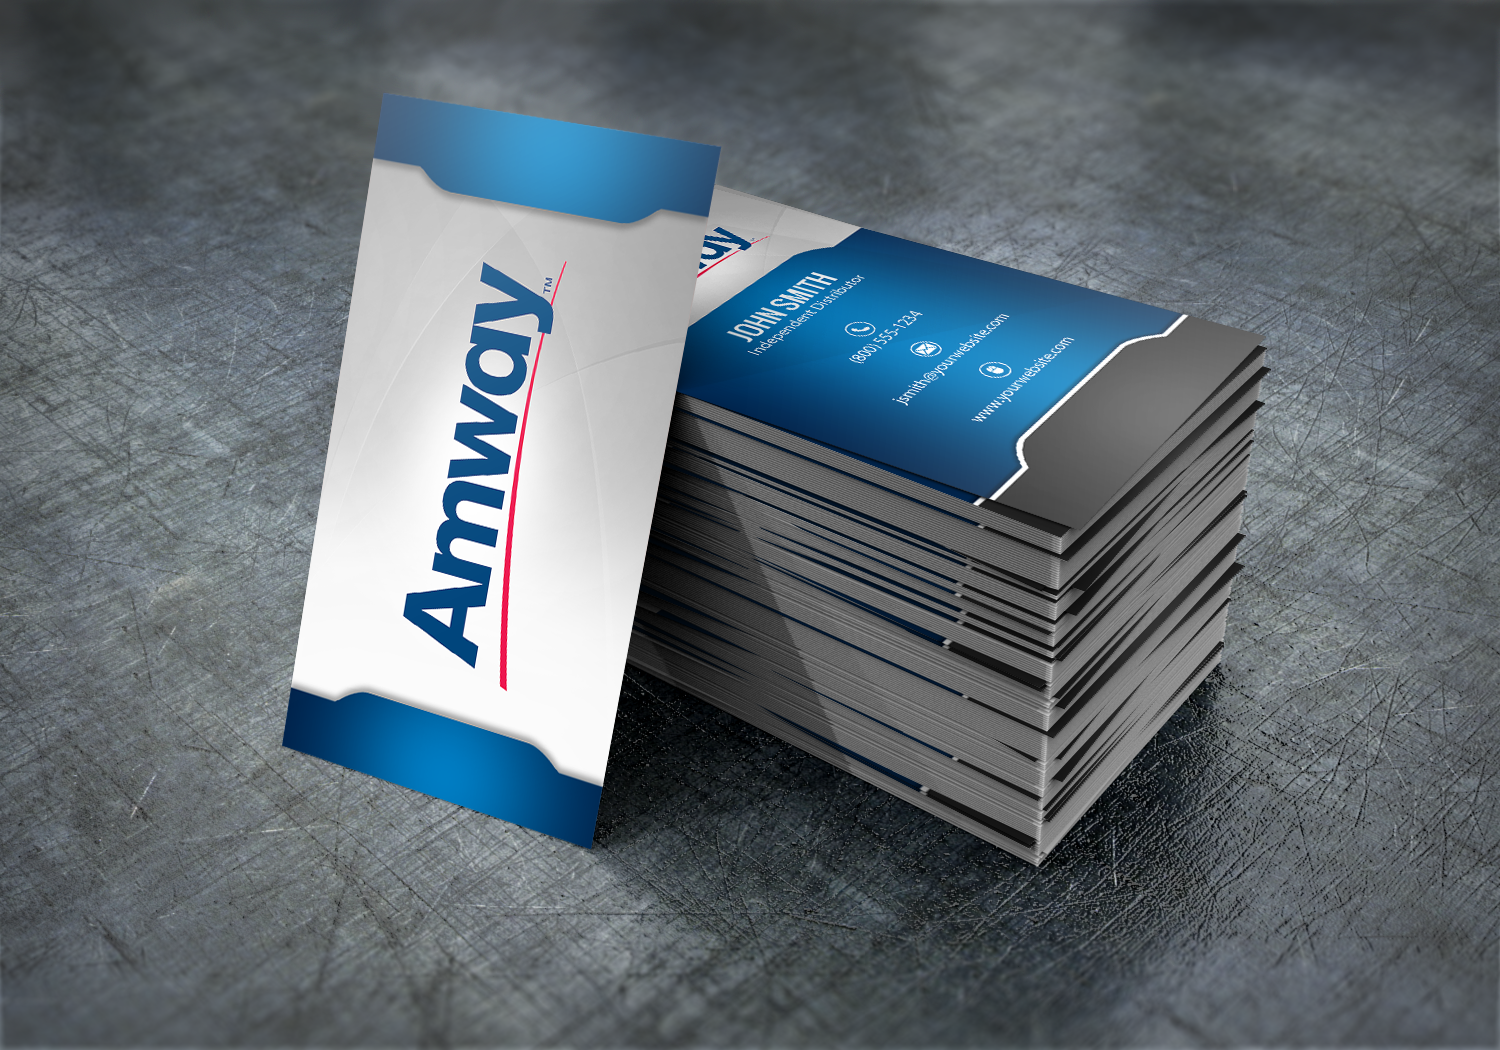 Make A Great First Impression With Our New Amway Business Card Designs Mlm Amway Print Paper Graphicdesign Businessc Amway Business Amway Business Cards